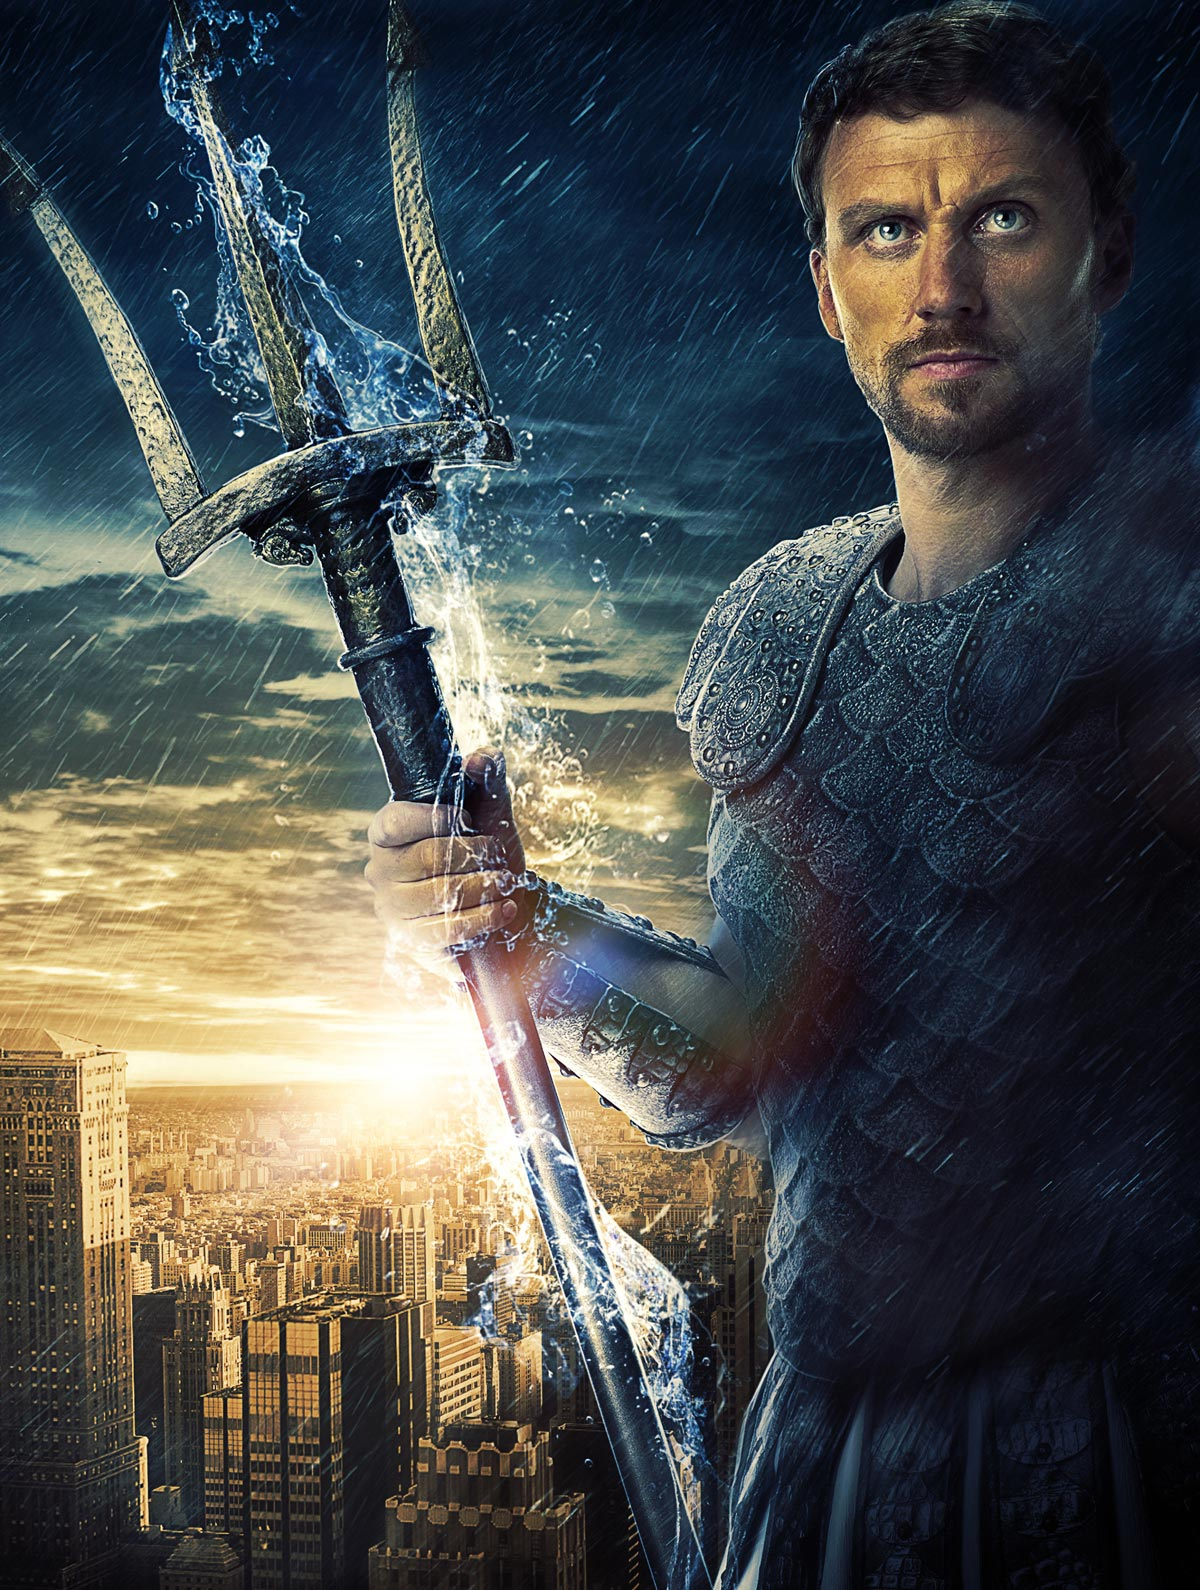 Even More Percy Jackson And The Lightning Thief Posters